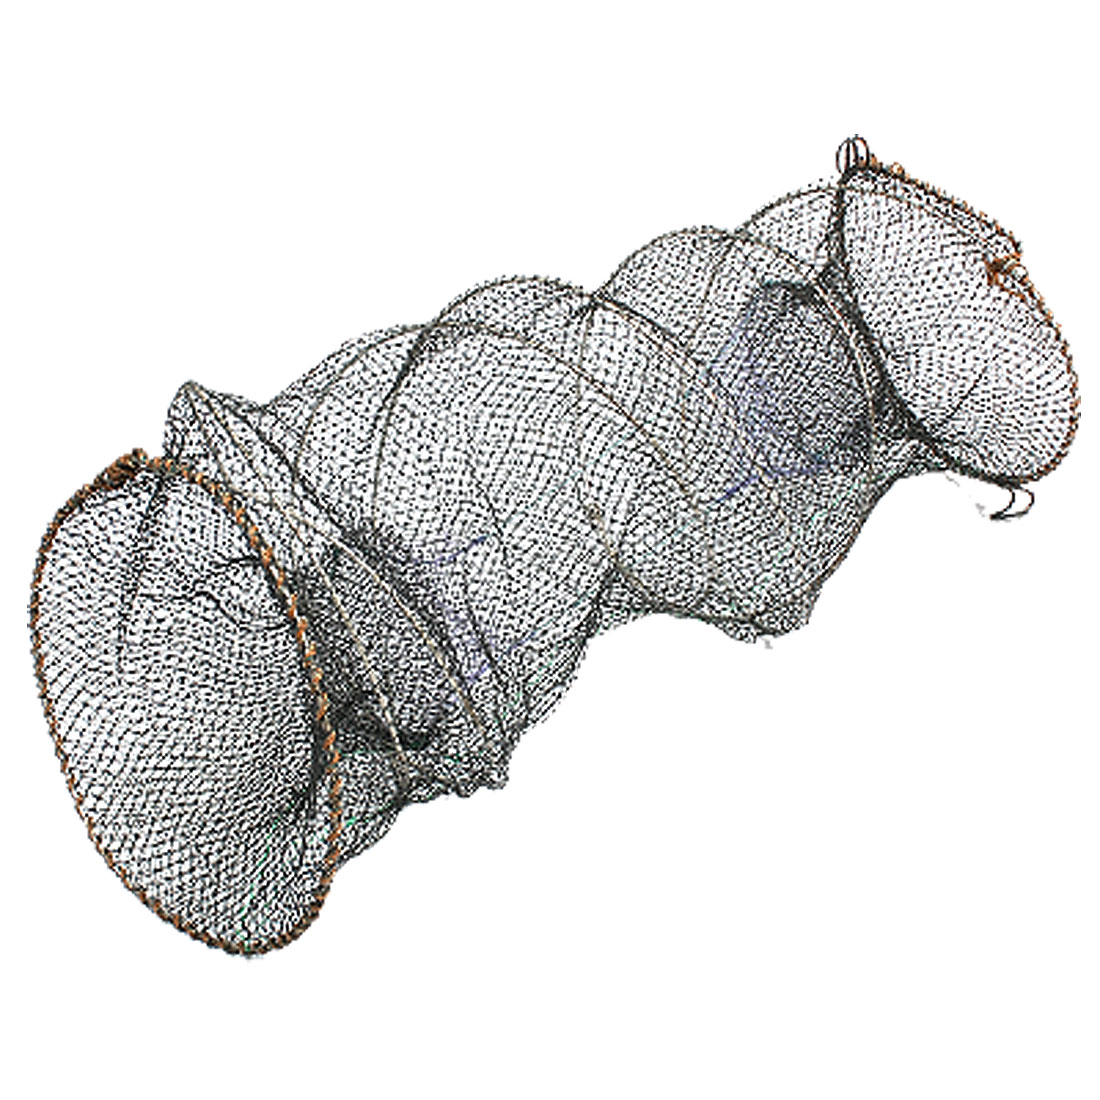 Fishing net images clipart best for Fish nets near me